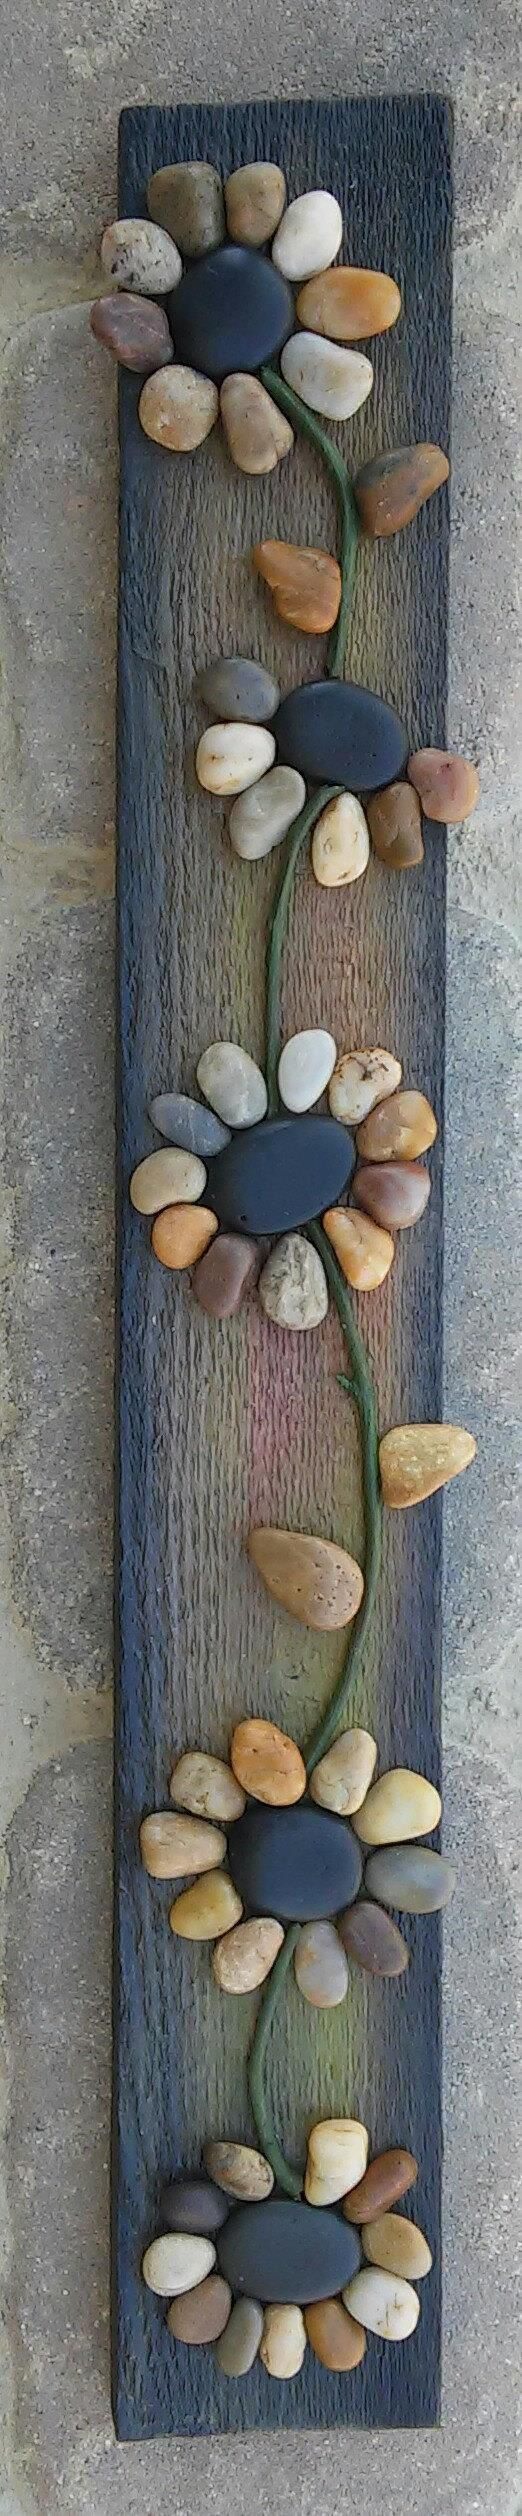 -Original pebble/rock art depicting a string of flowers (all natural  materials including reclaimed wood, ...